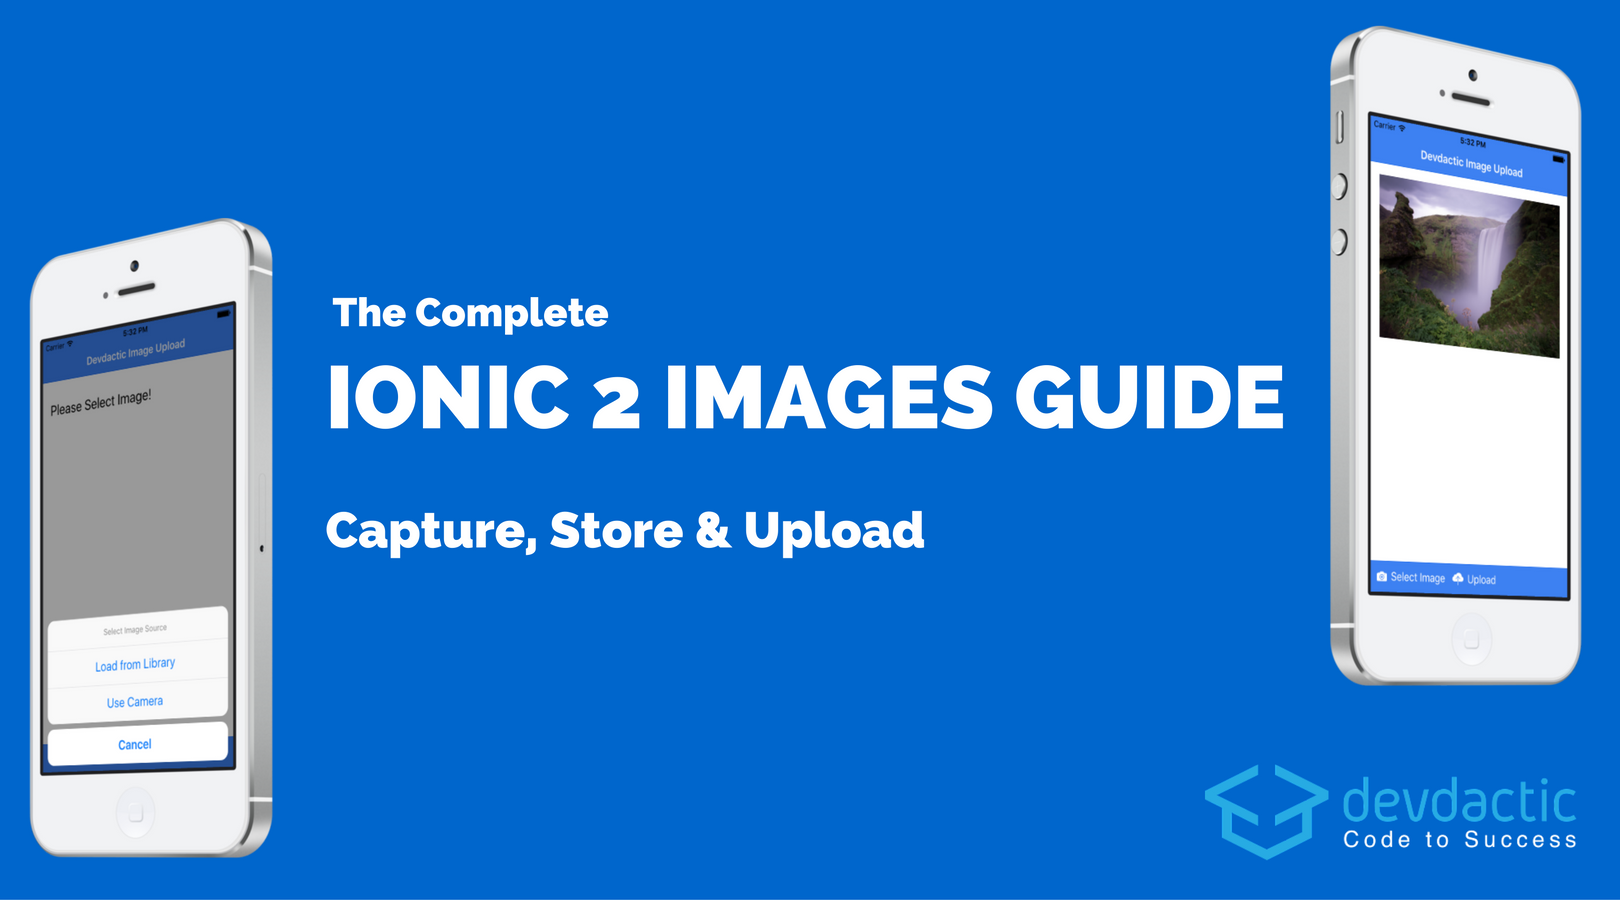 The Complete Ionic Images Guide (Capture, Store & Upload) - Devdactic